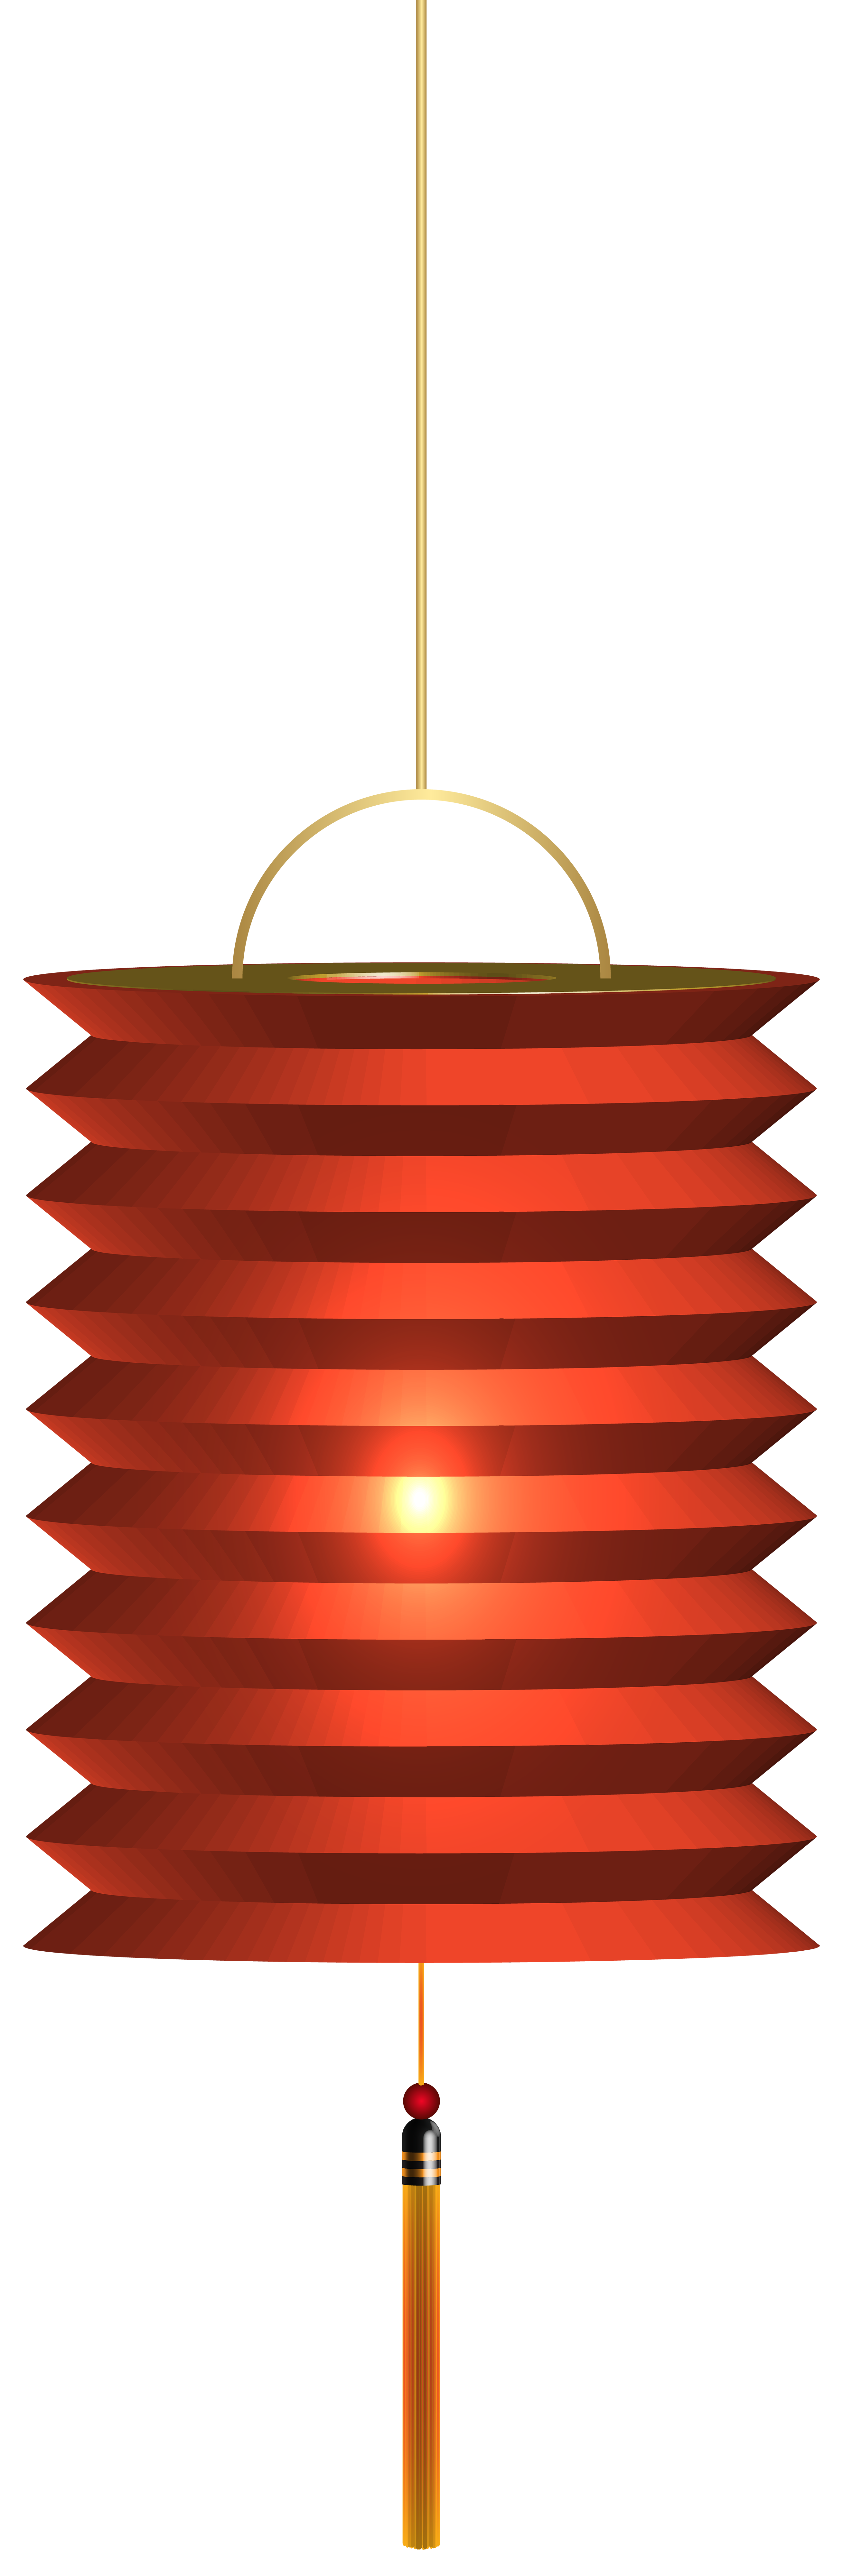 png transparent stock Red paper lantern png. Asian clipart lamp chinese.